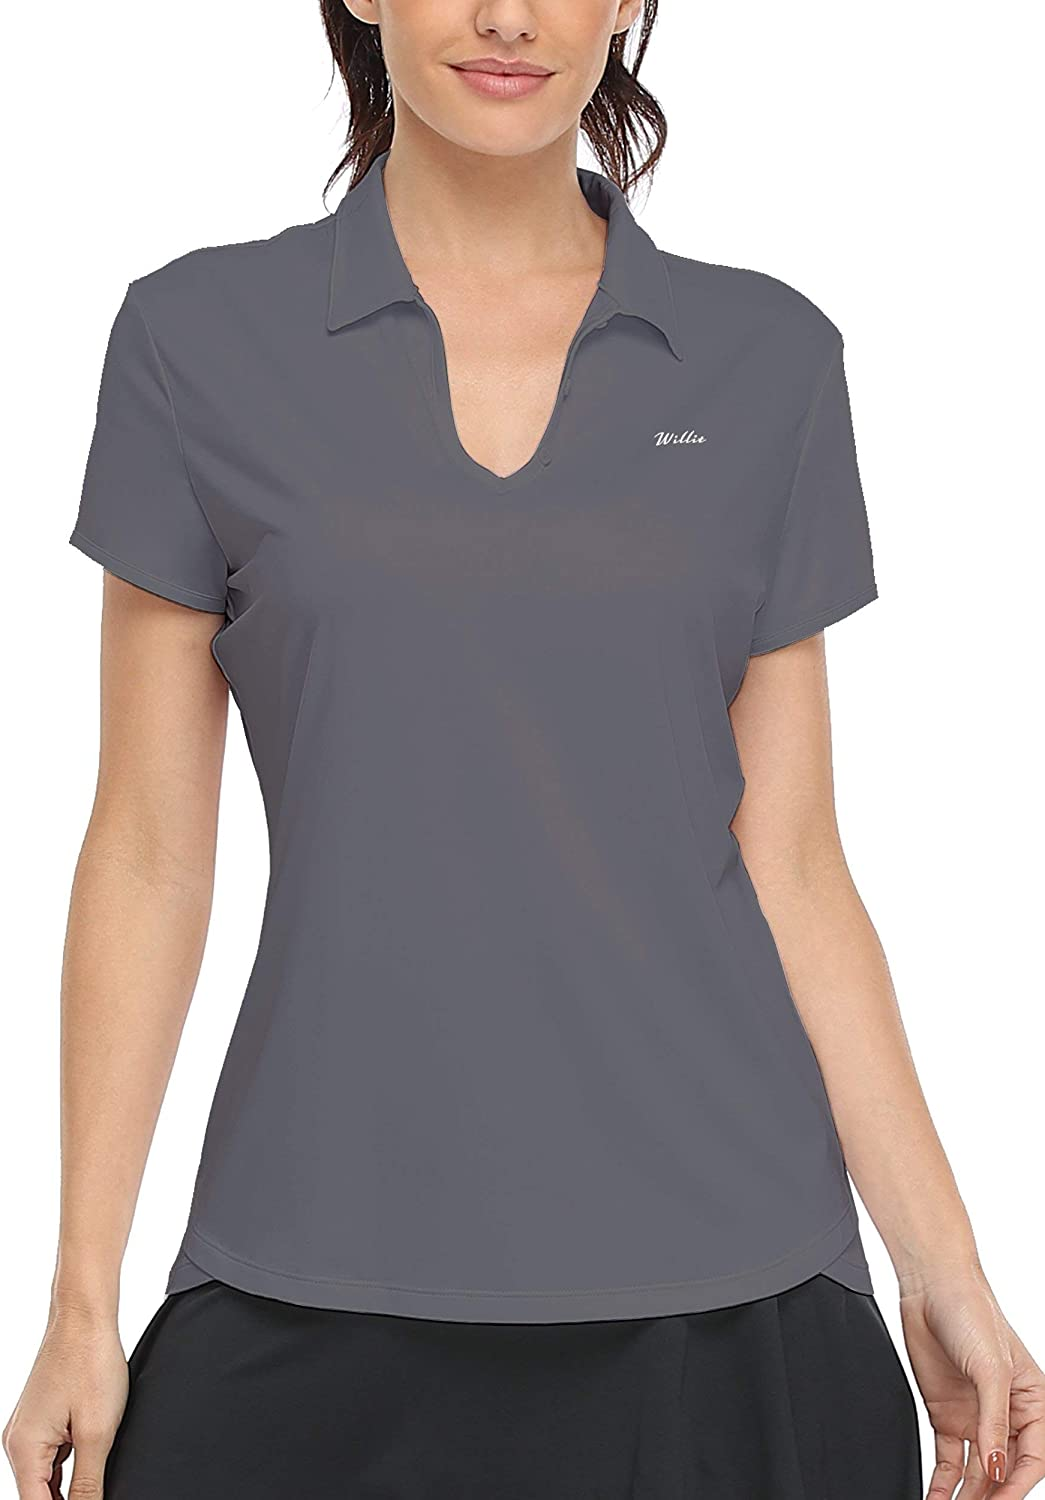 Willit Women's Tennis Shirts Golf Polo Shirts Short Sleeve Quick Dry Active Workout Shirts UPF 50+ Running Tops : Sports & Outdoors